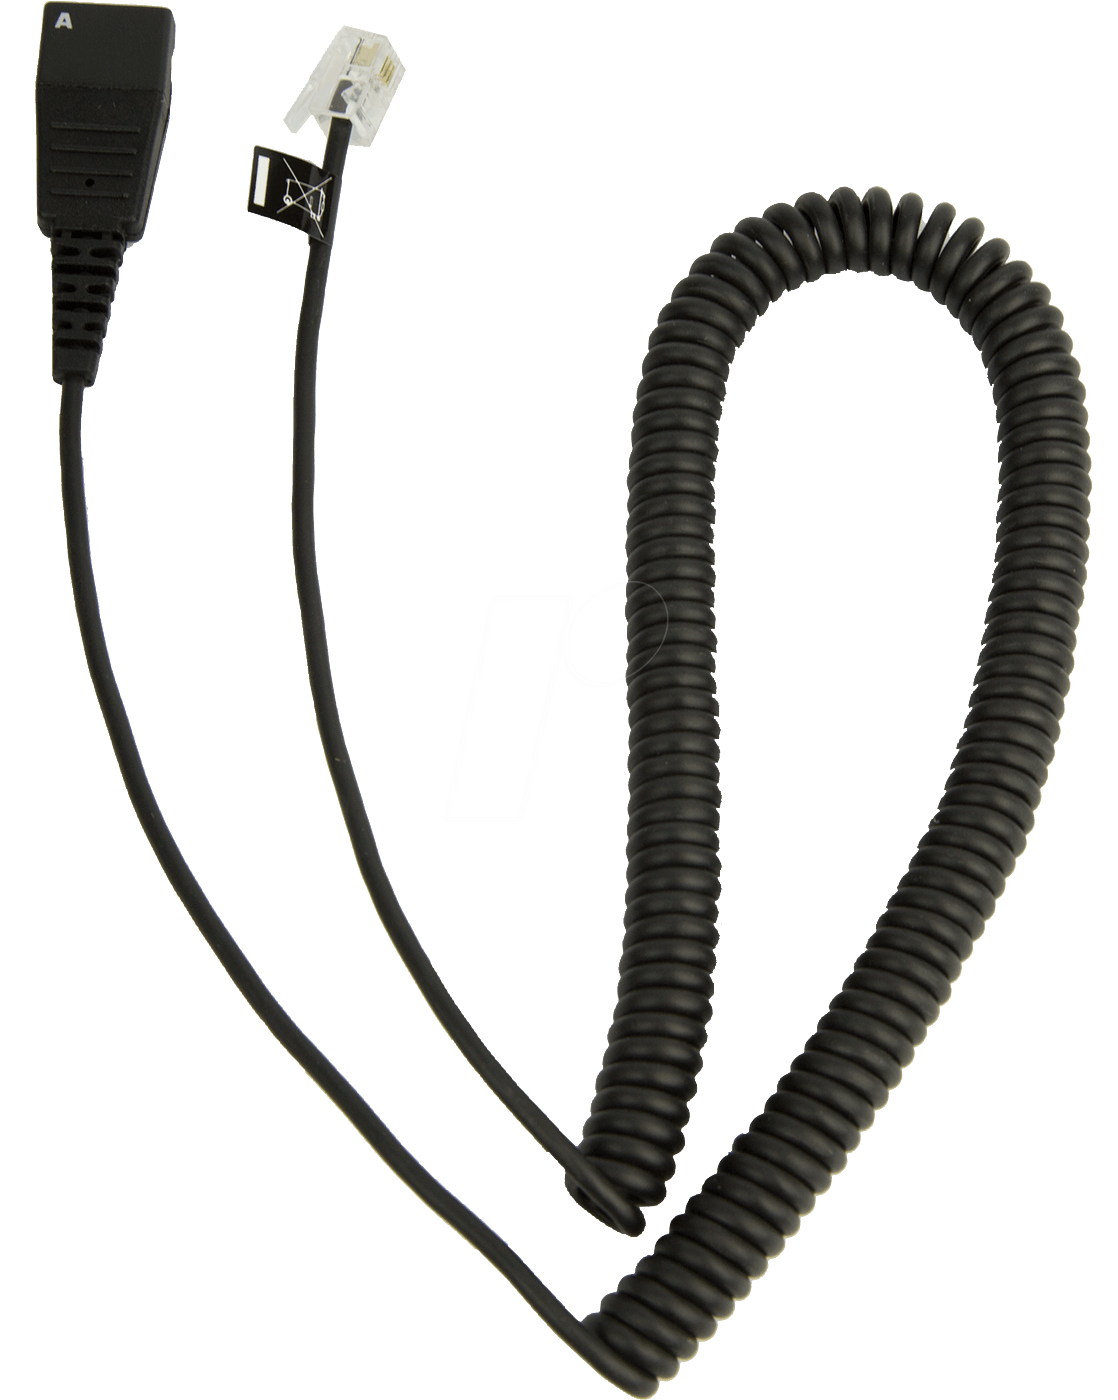 Gn 01 37 Headset Cable Quick Disconnect At Reichelt